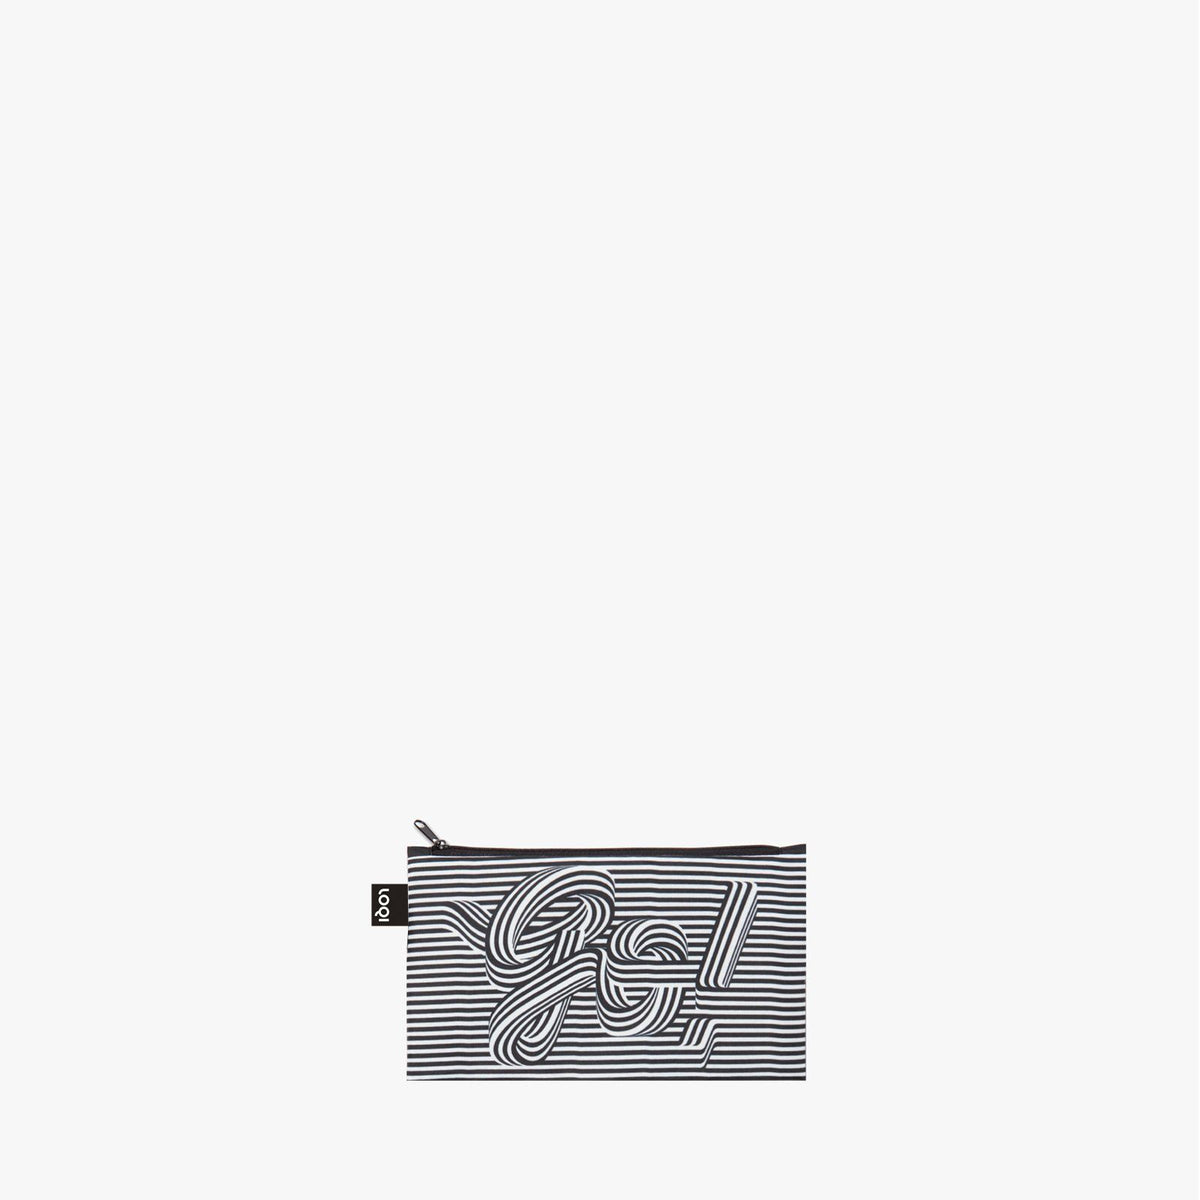 LOQI Sagmeister & Walsh Go Go Go Zip Pockets mini